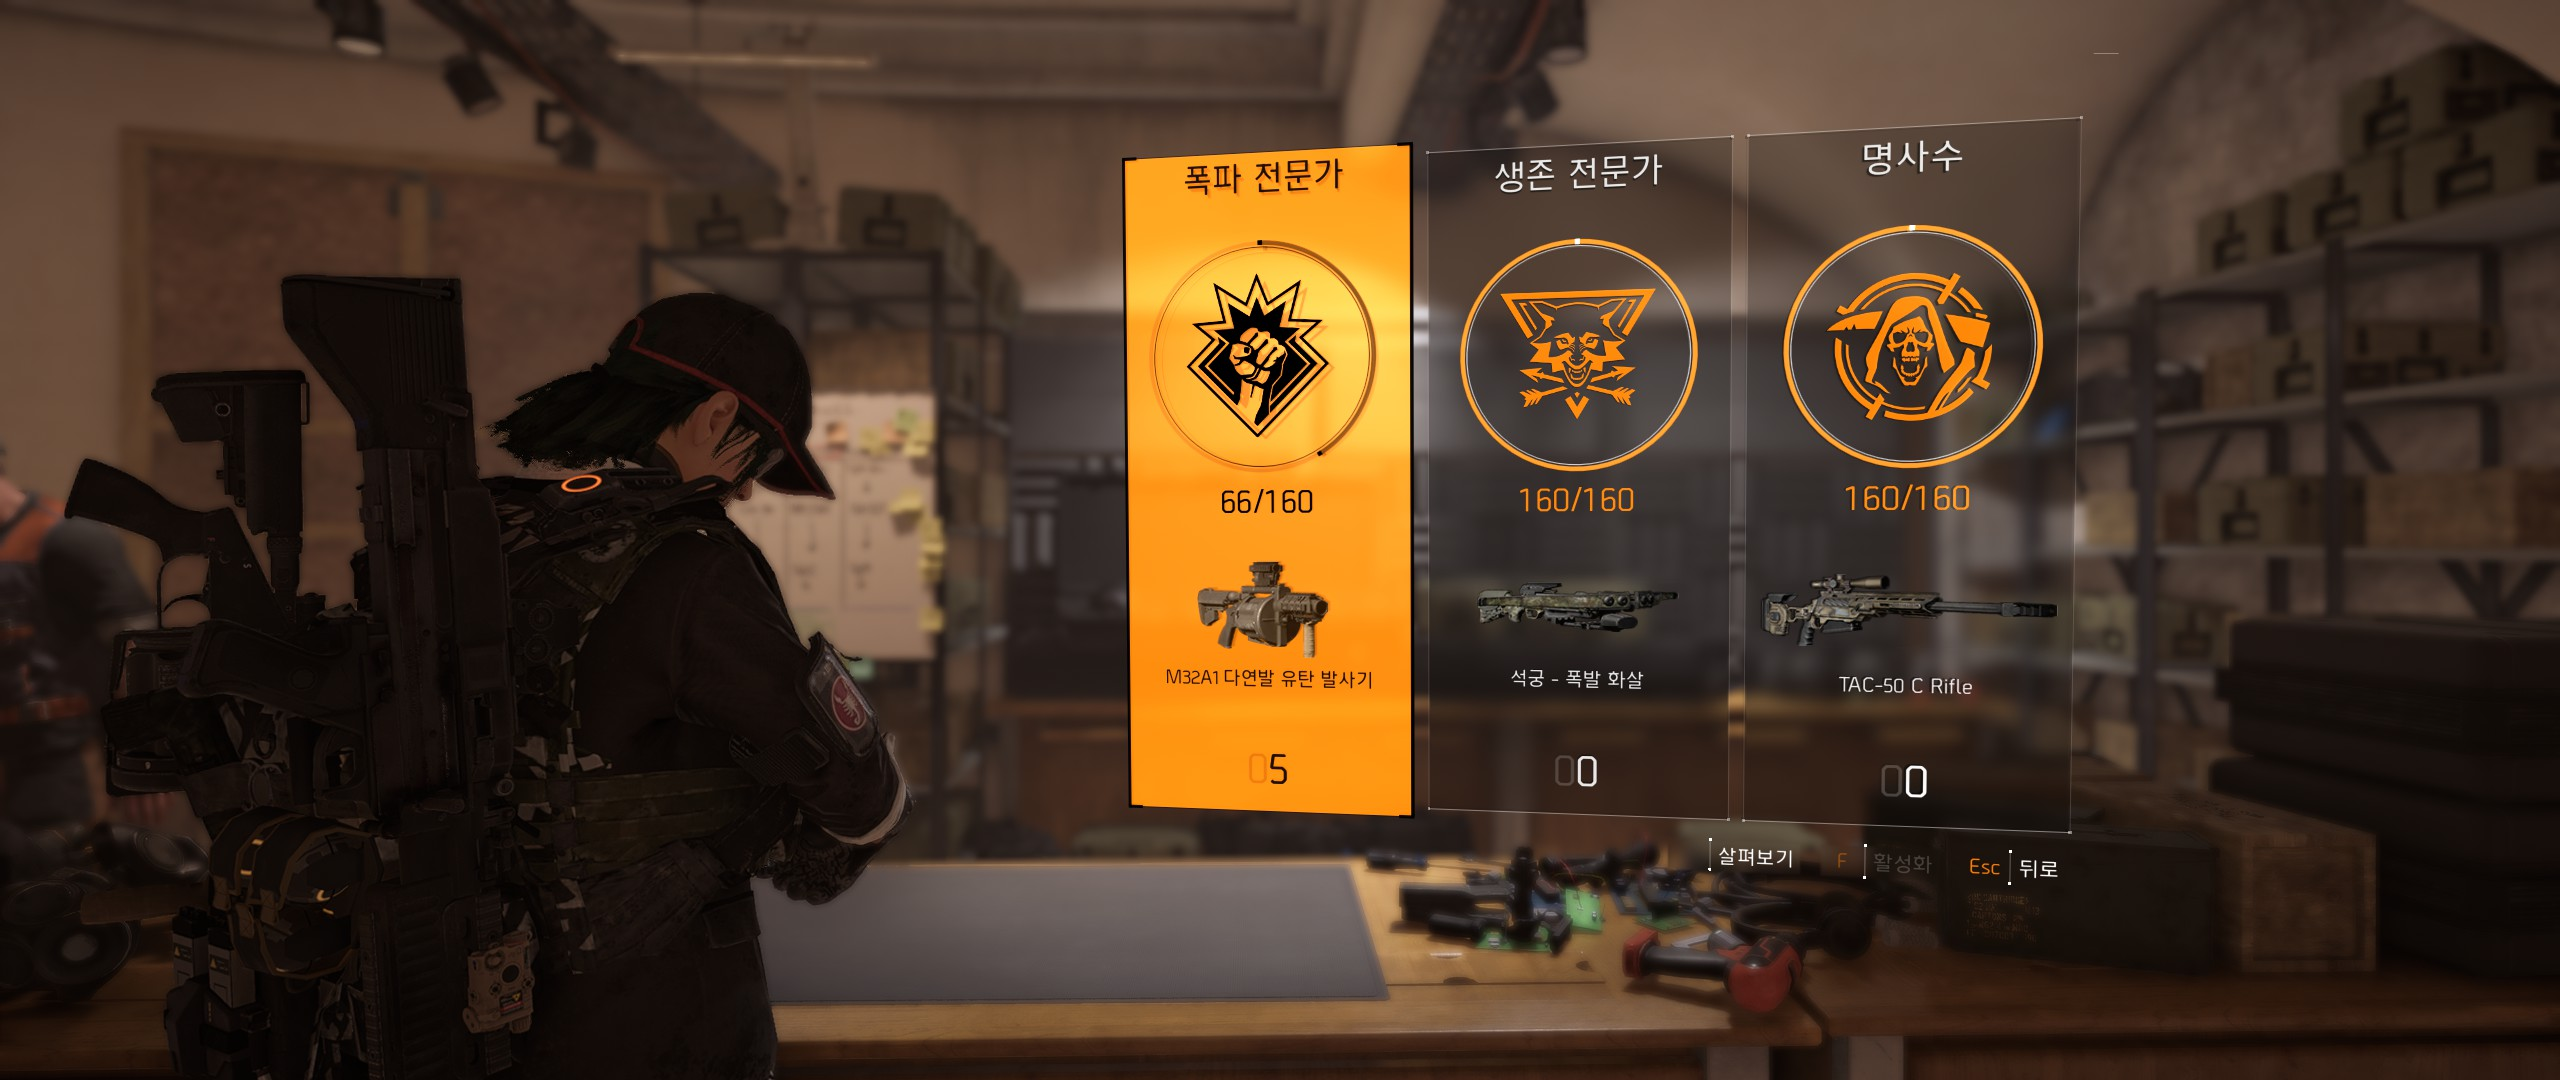 Tom Clancy's The Division® 22019-4-1-18-48-4.jpg